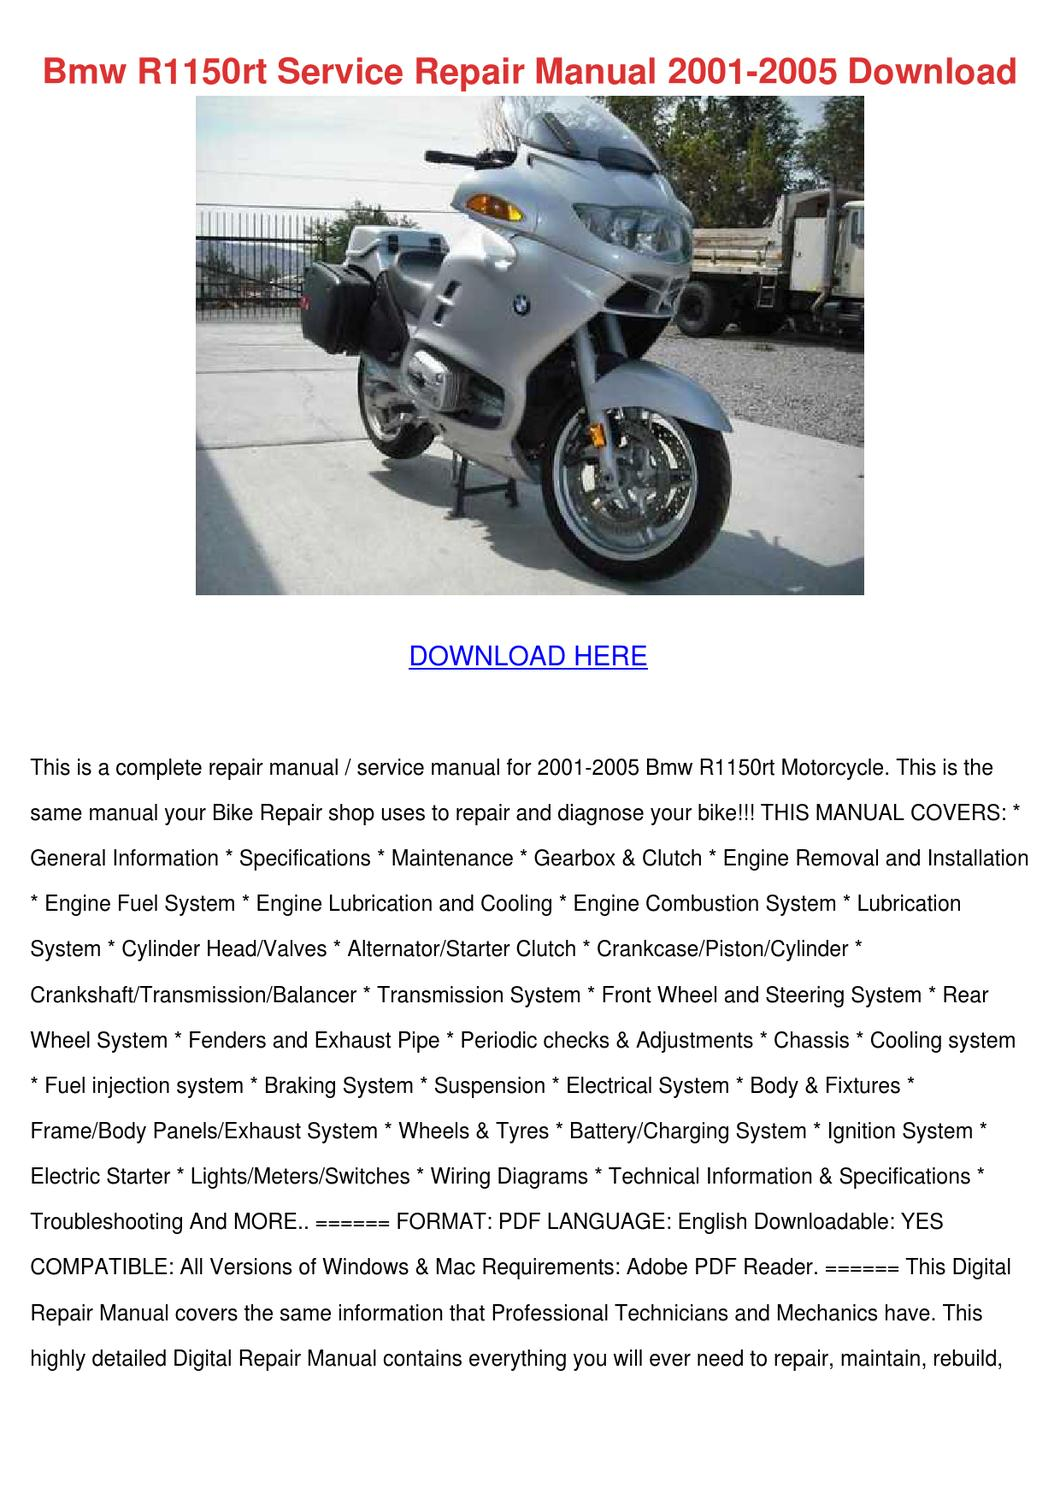 bmw r1150rt service repair manual 2001 2005 d by. Black Bedroom Furniture Sets. Home Design Ideas